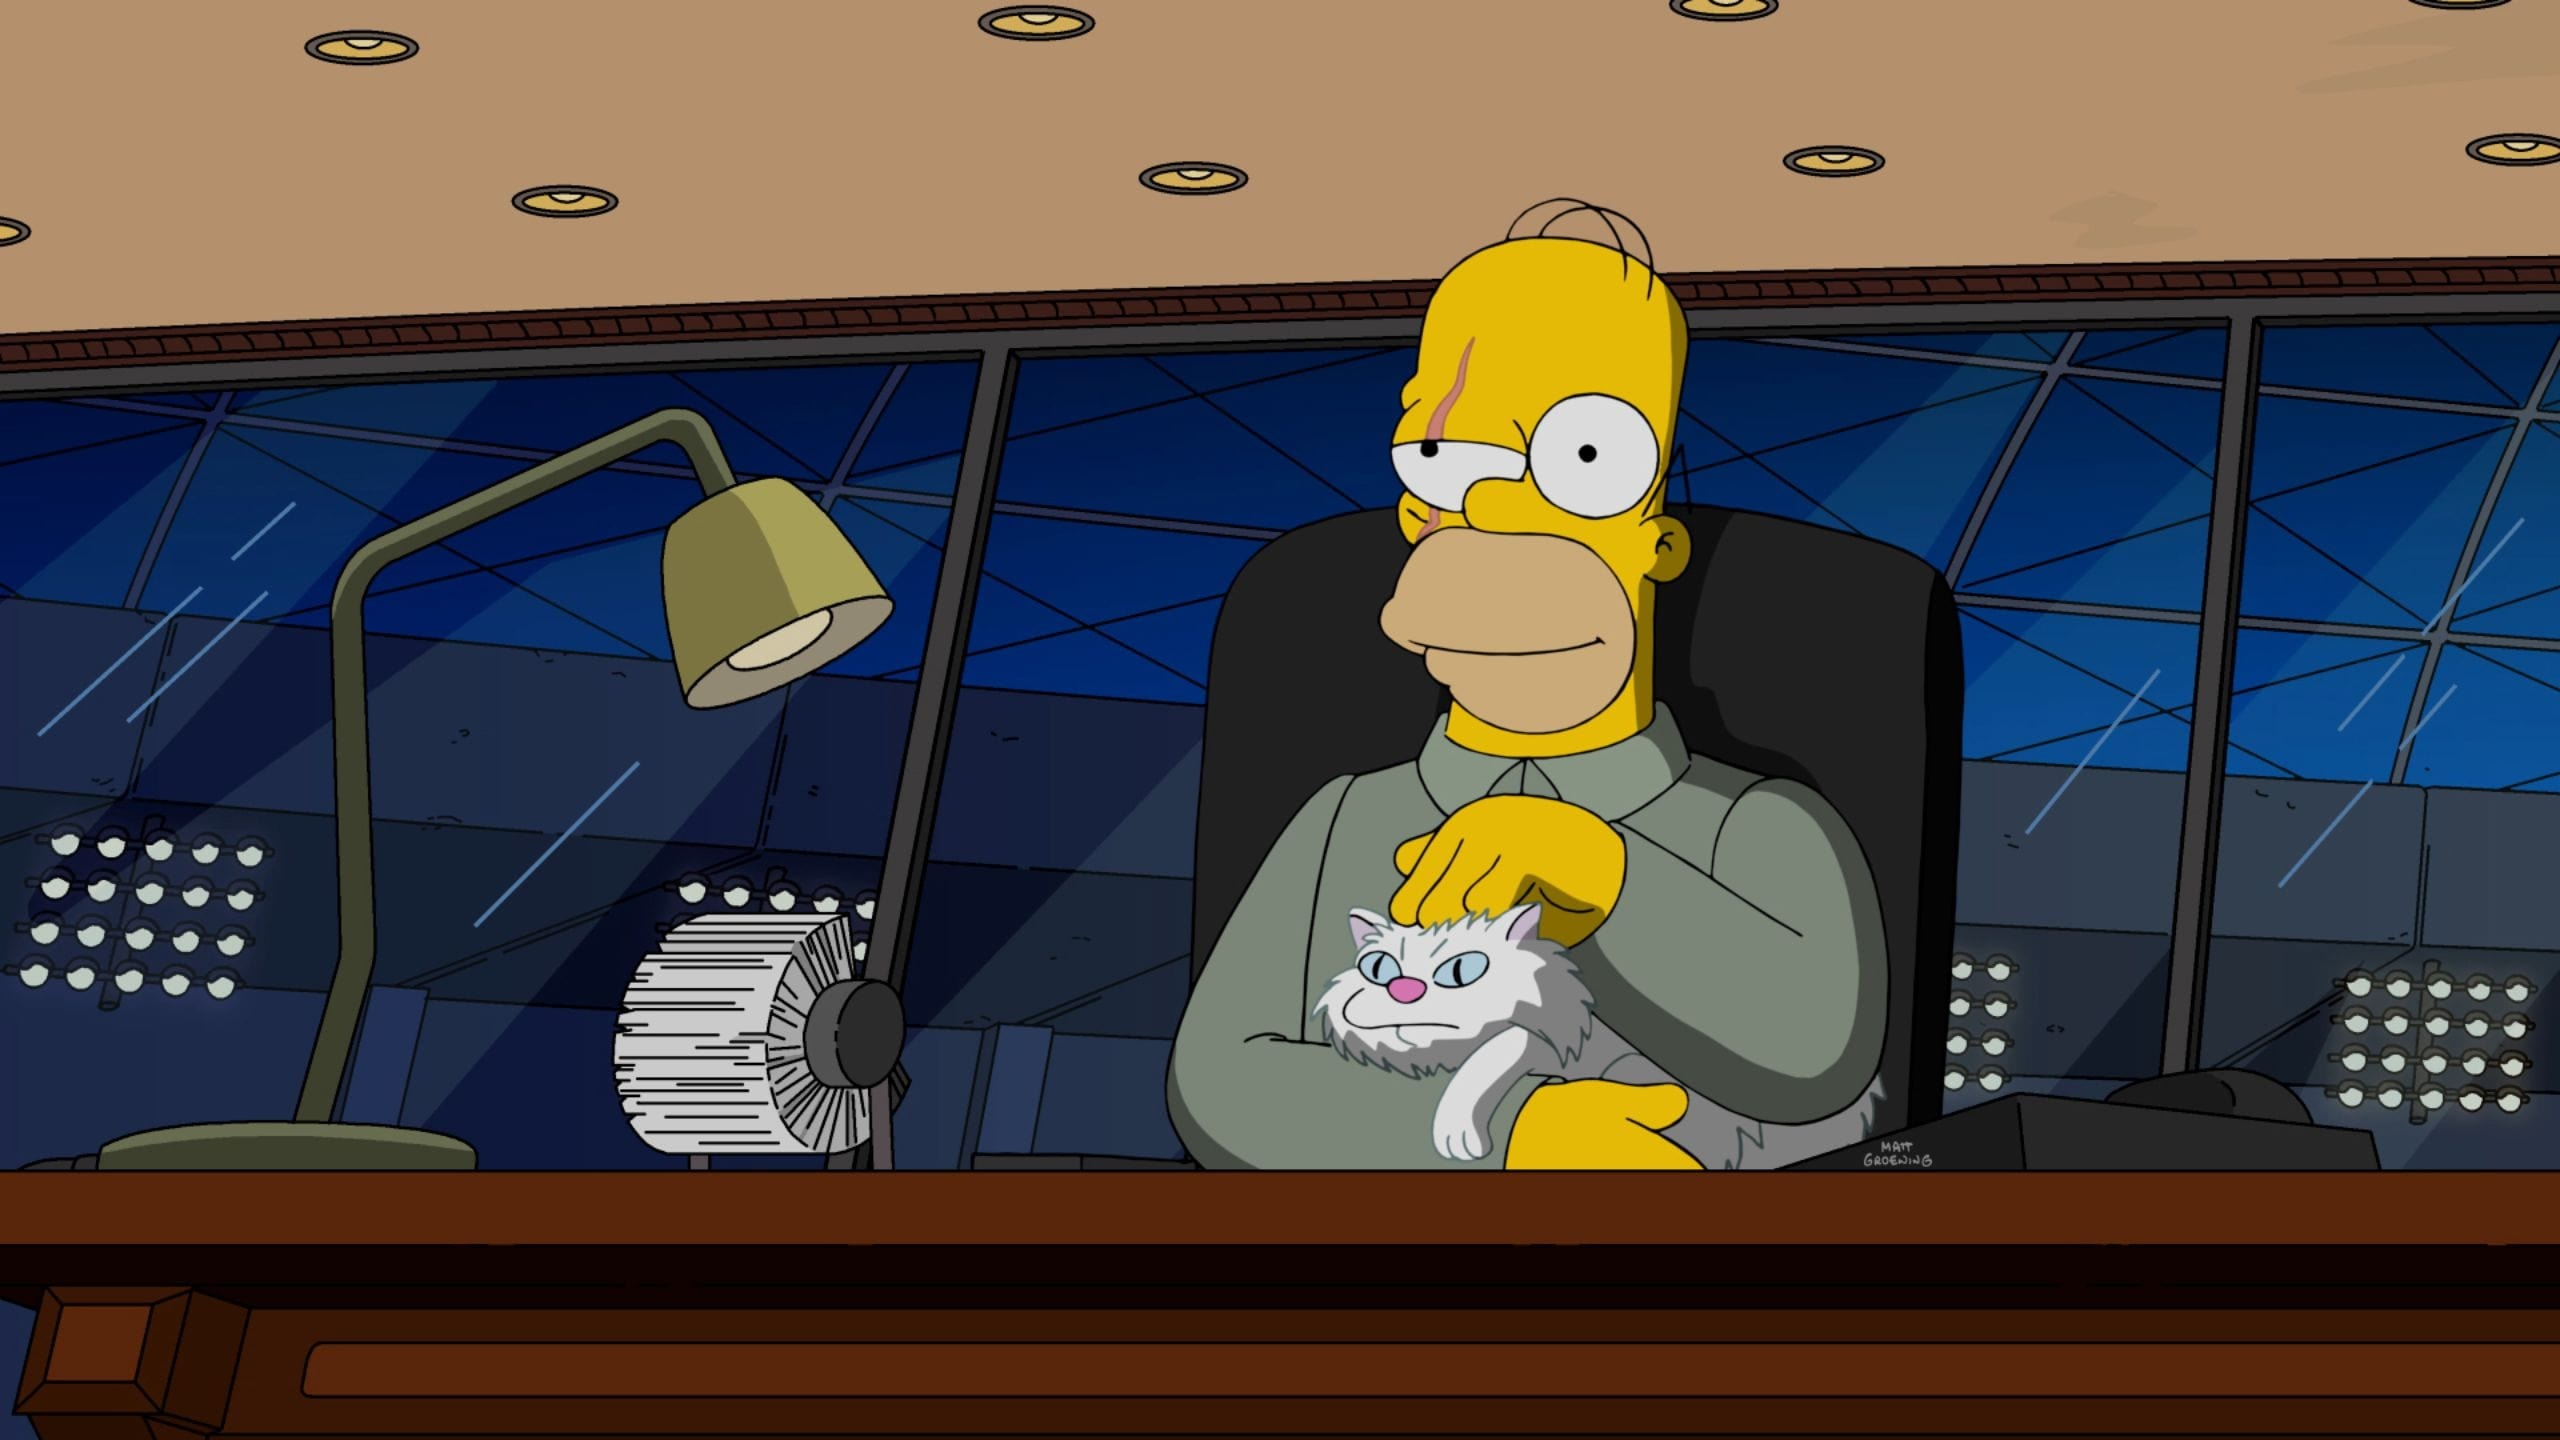 The Simpsons - Season 28 Episode 4 : Treehouse of Horror XXVII